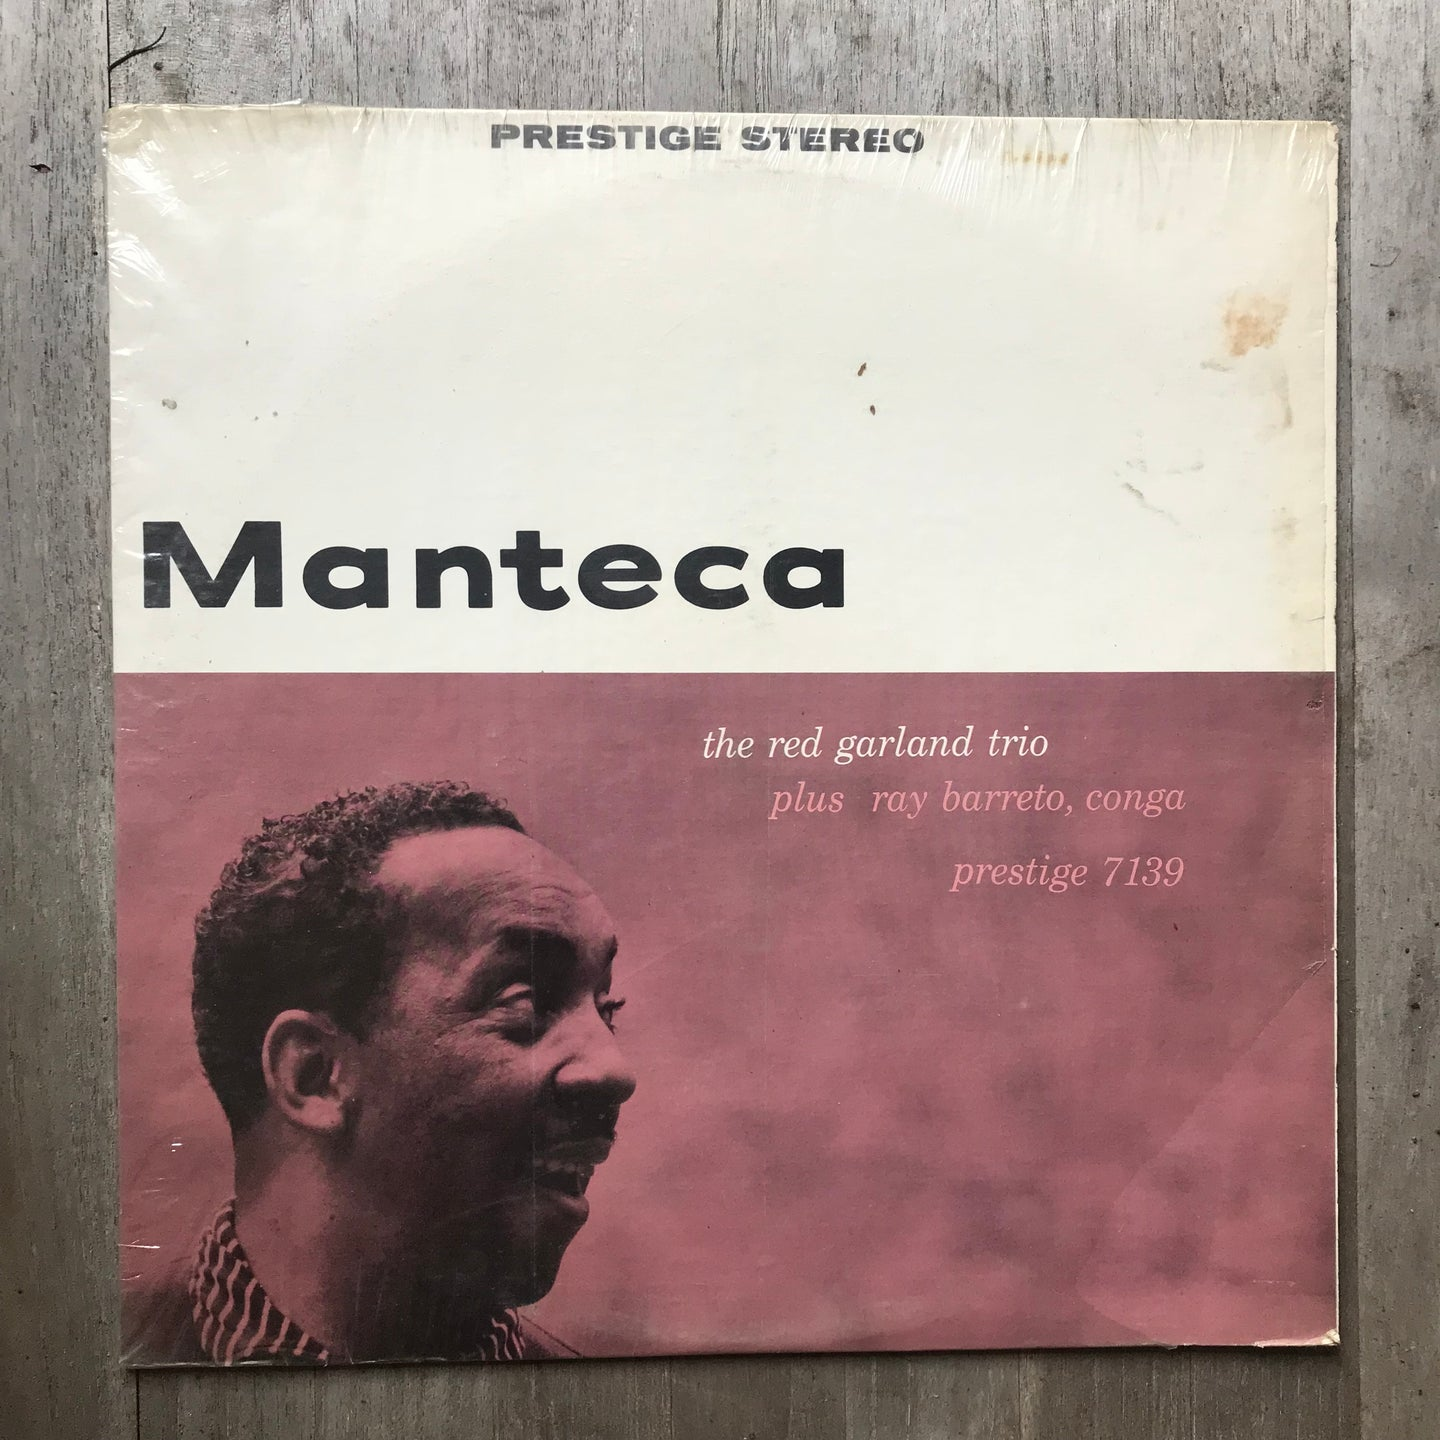 Red Garland Trio - Manteca - Prestige